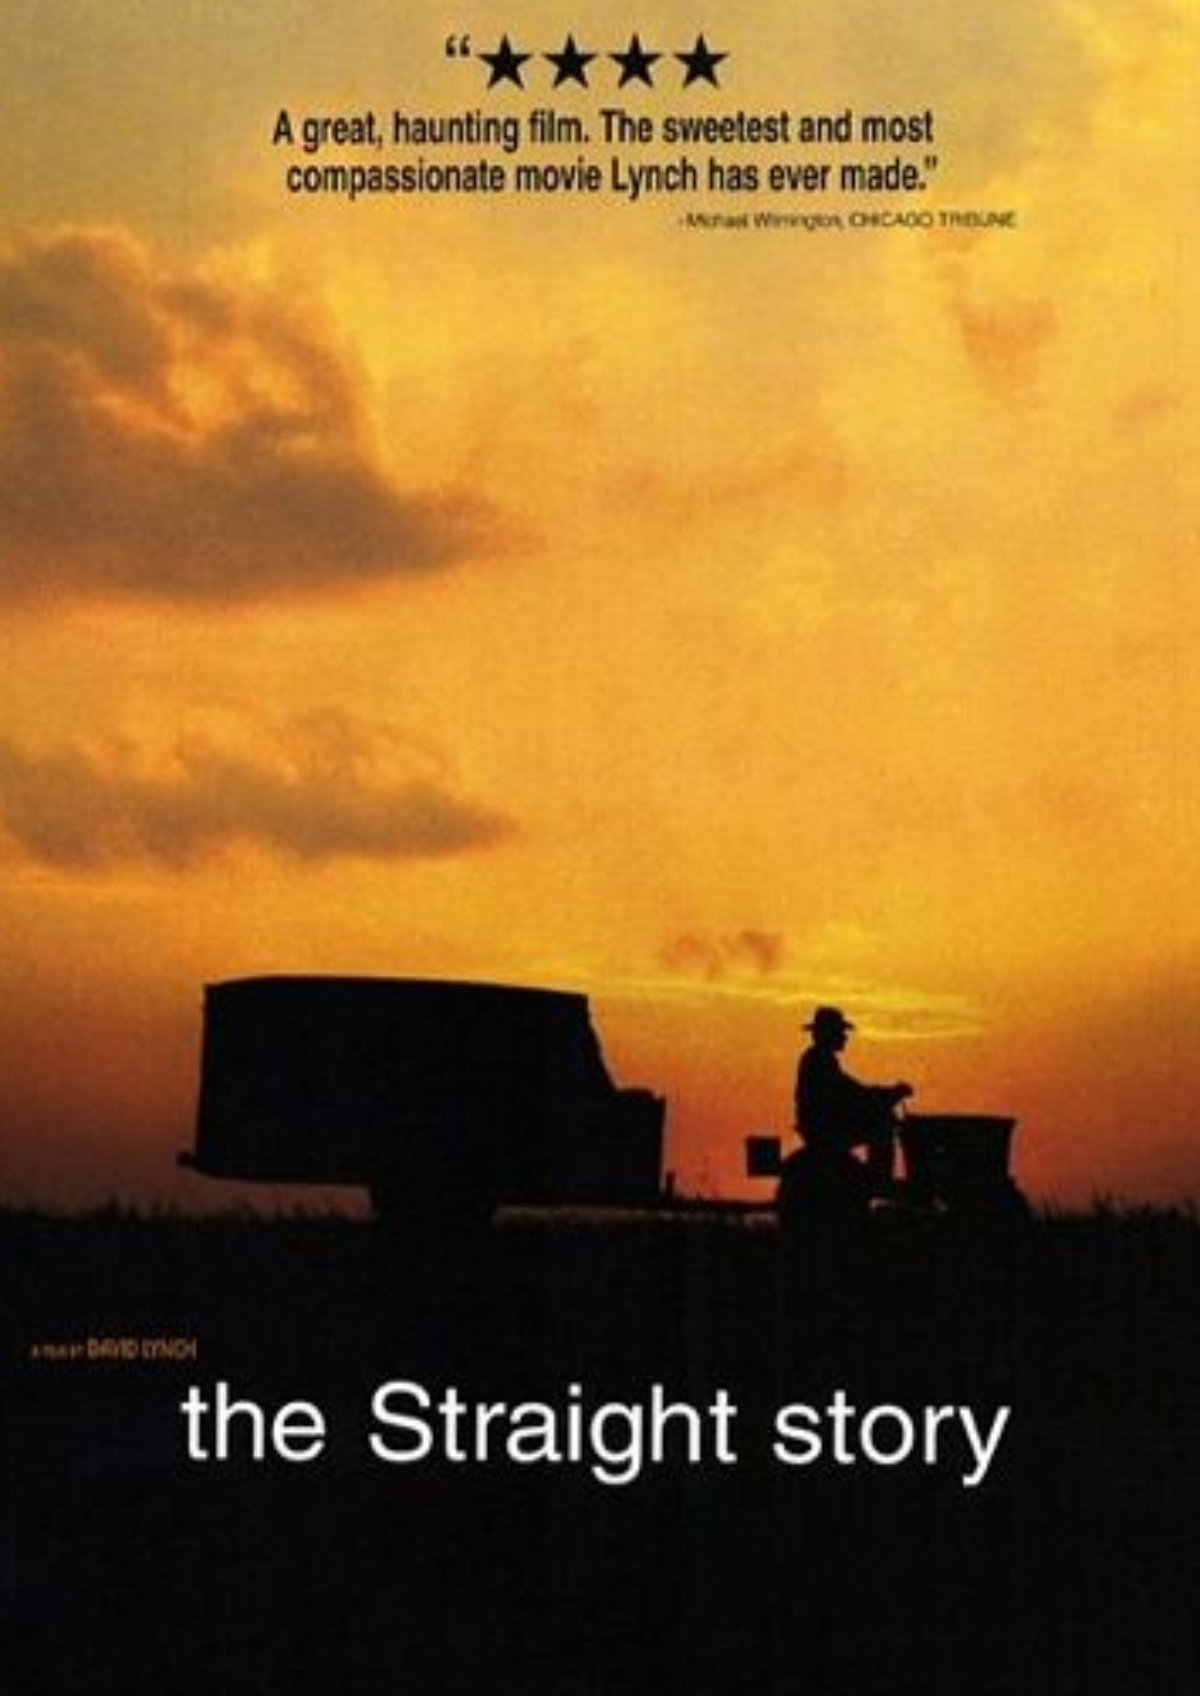 'The Straight Story' movie poster